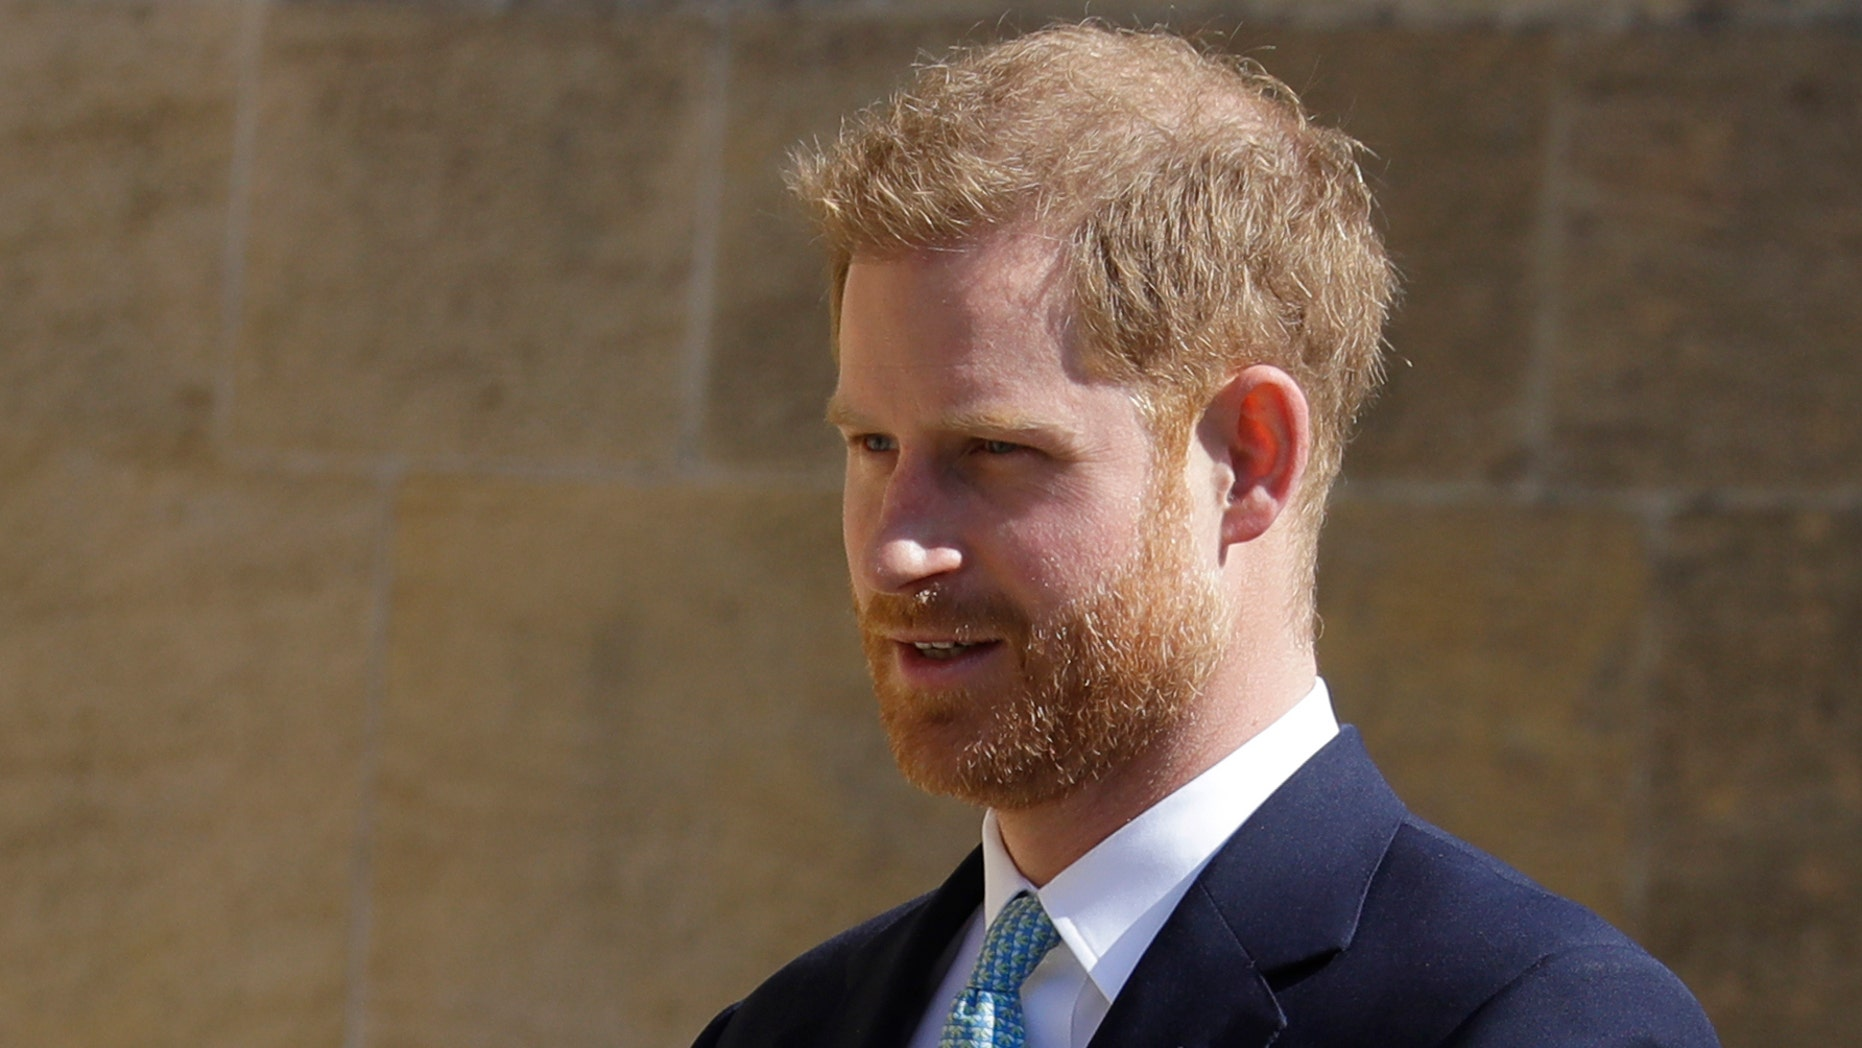 DOSSIER - In this archive photo from Sunday, April 21, 2019, the British Prince of England arrives to attend the Easter Easter service at St. George's Chapel, Windsor Castle, England. Prince Harry is supporting Angola's new £ 47 million landmines clearance initiative, which is expected to protect lives and help communities through conservation-oriented development. Speaking Monday at the Chatham House think tank, Harry took over for a cause dear to his mother, the late Princess Diana, who worked with the Halo Trust on mine clearance issues. (AP Photo / Kirsty Wigglesworth, file)